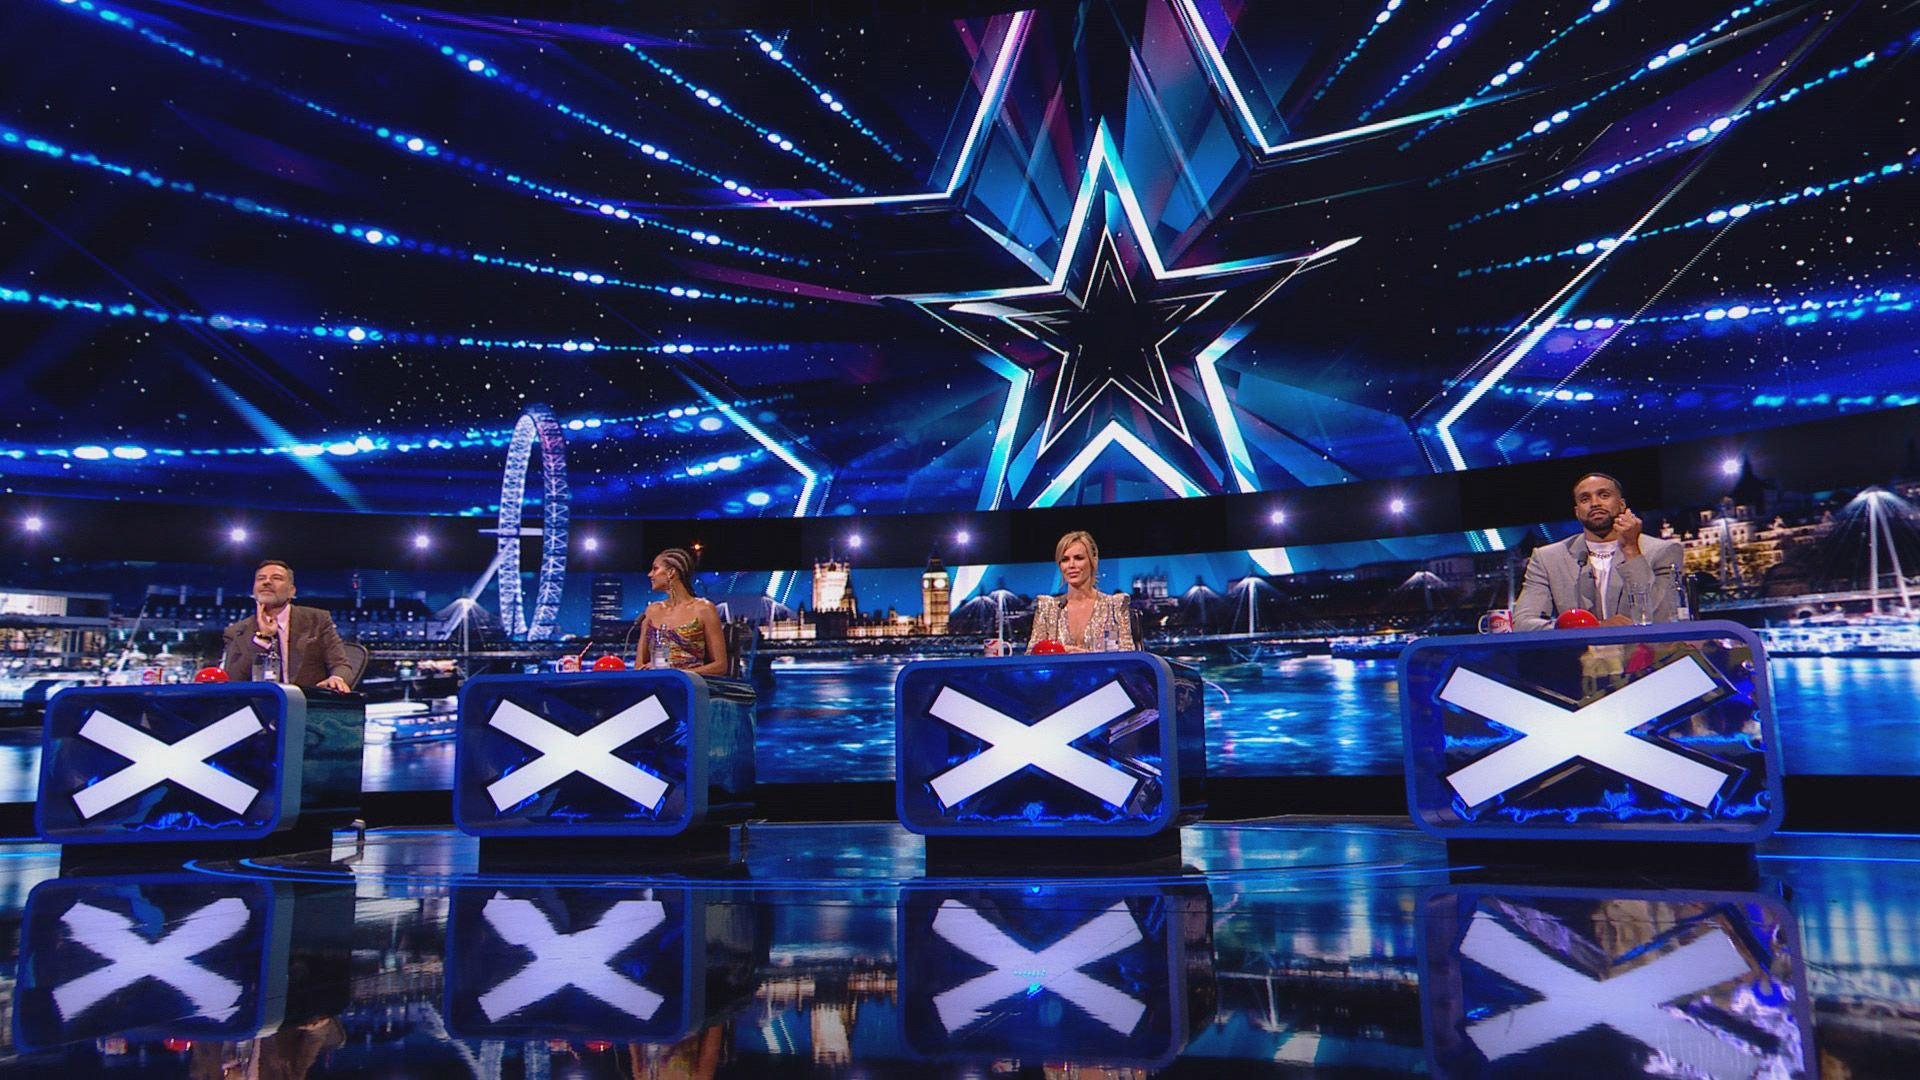 BGT offers first-look at socially distanced judges